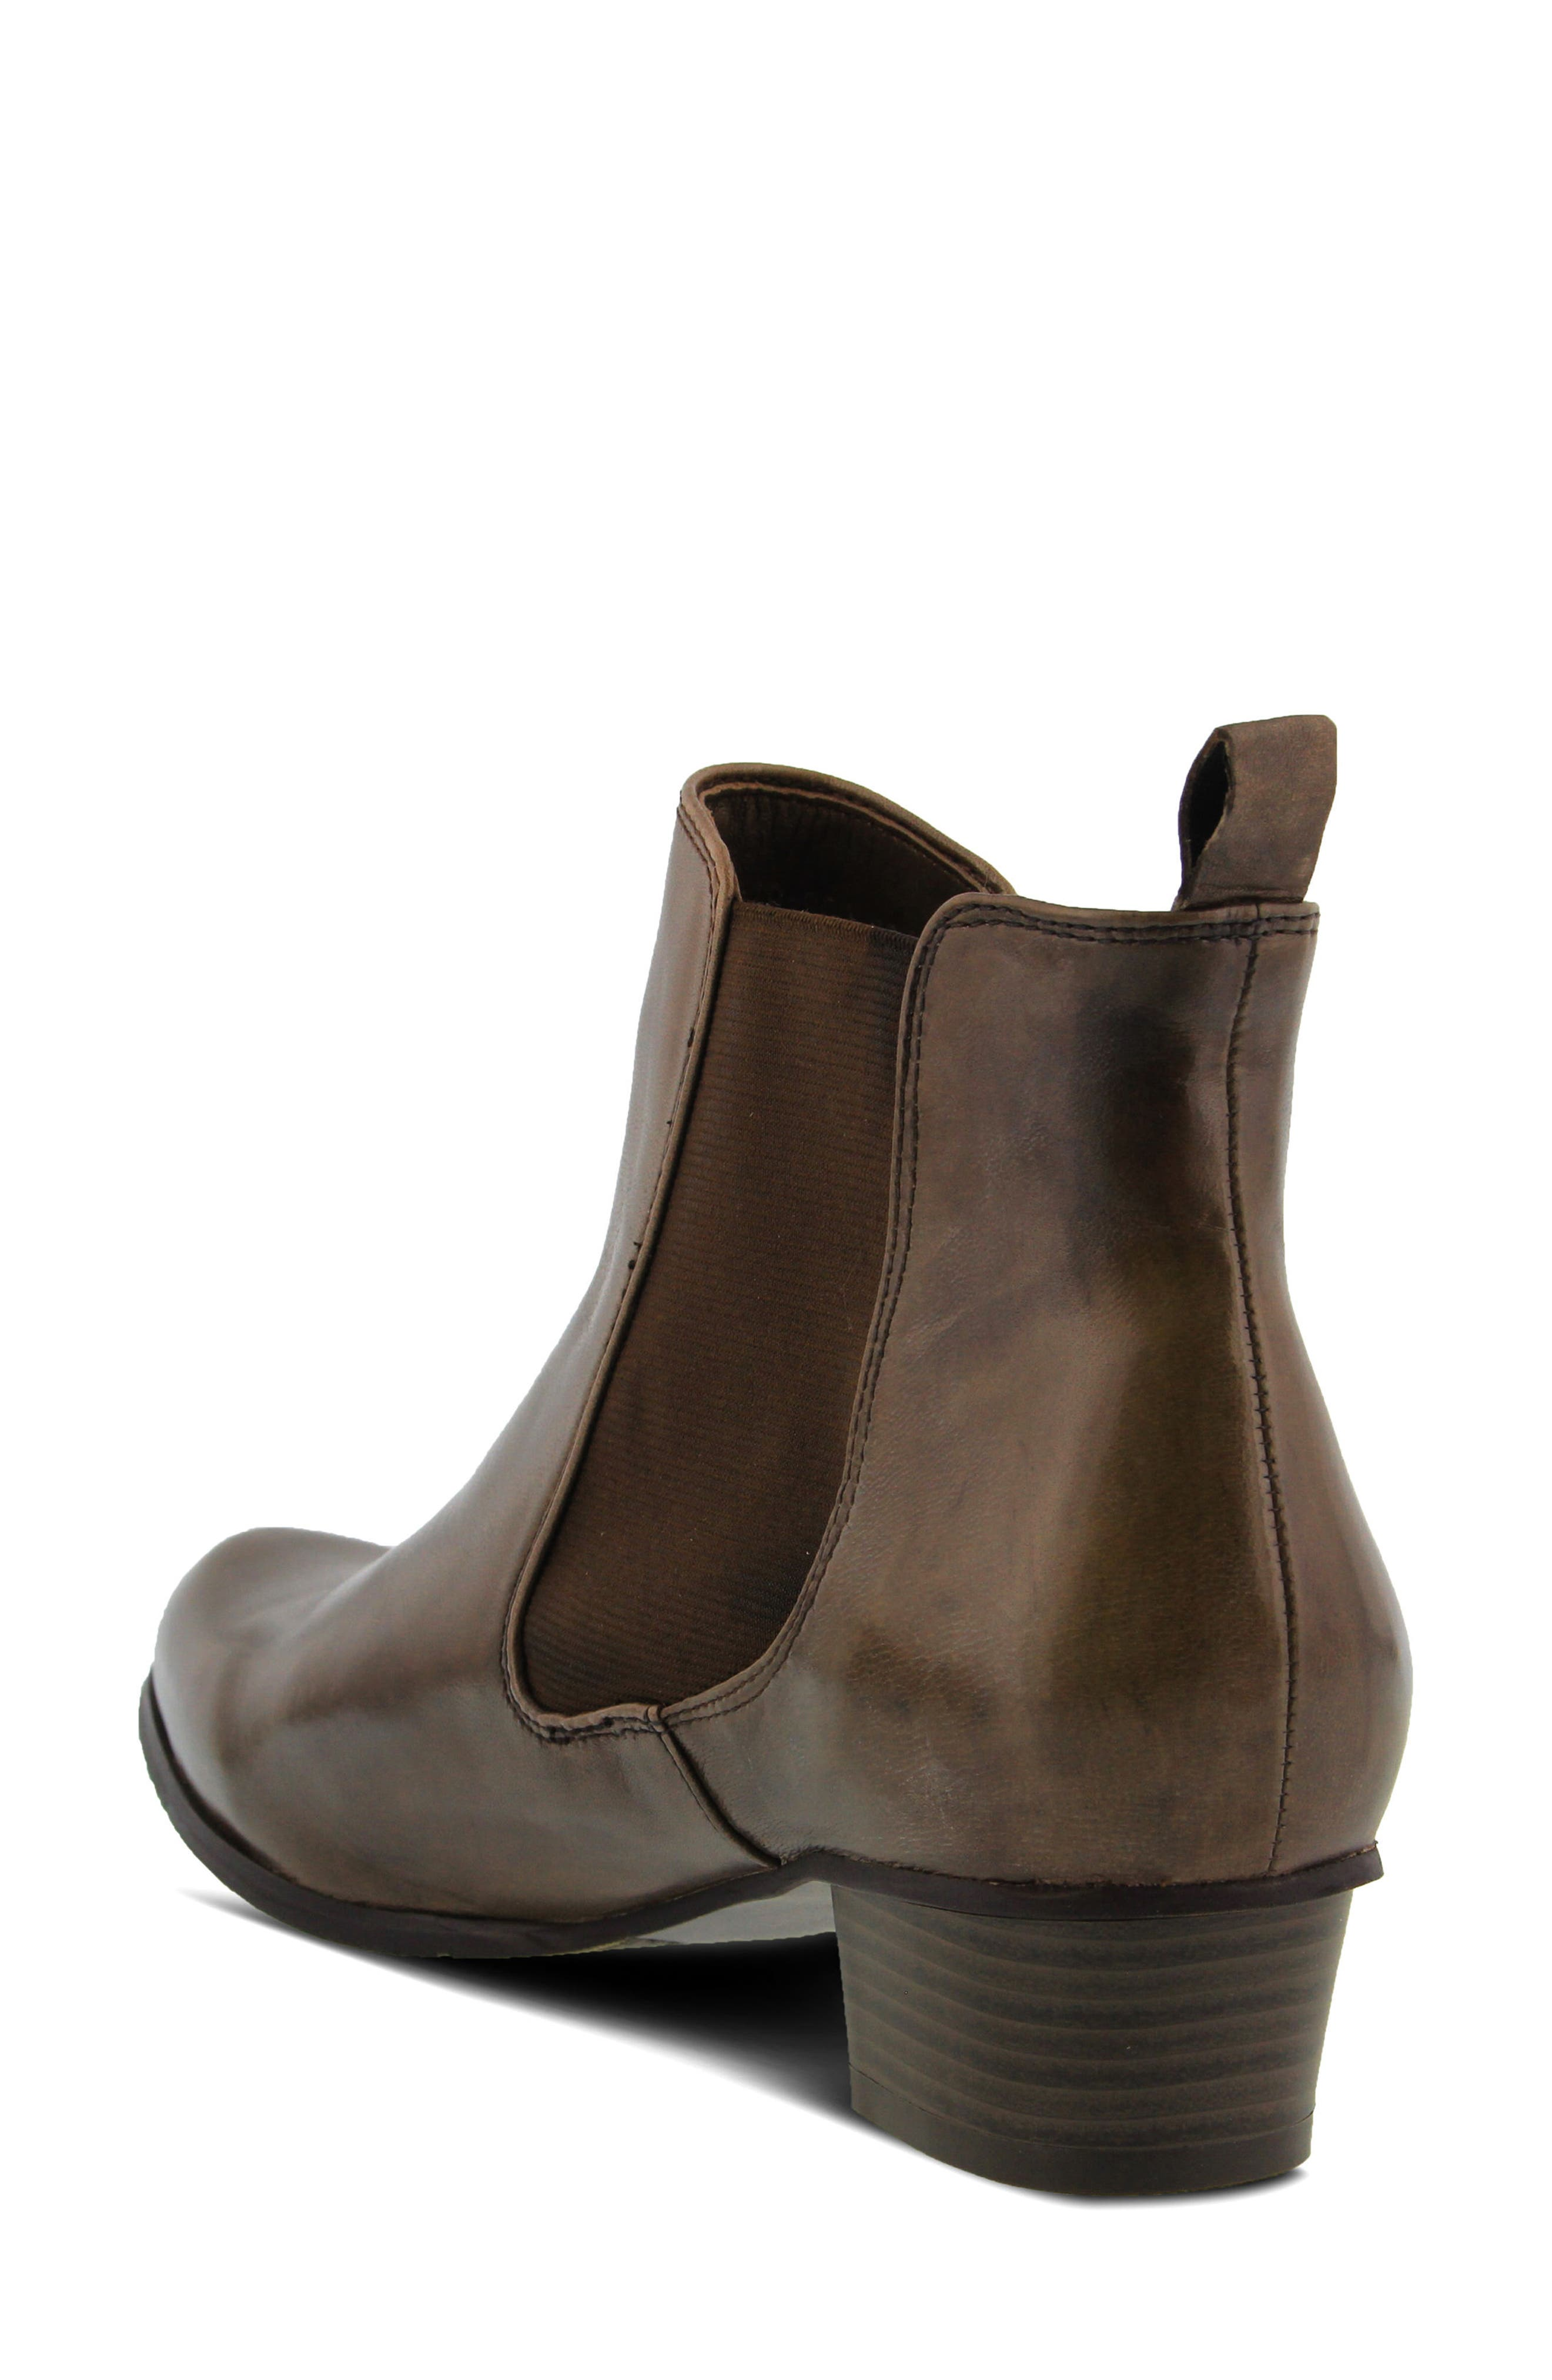 Lithium Chelsea Boot,                             Alternate thumbnail 2, color,                             Taupe Leather